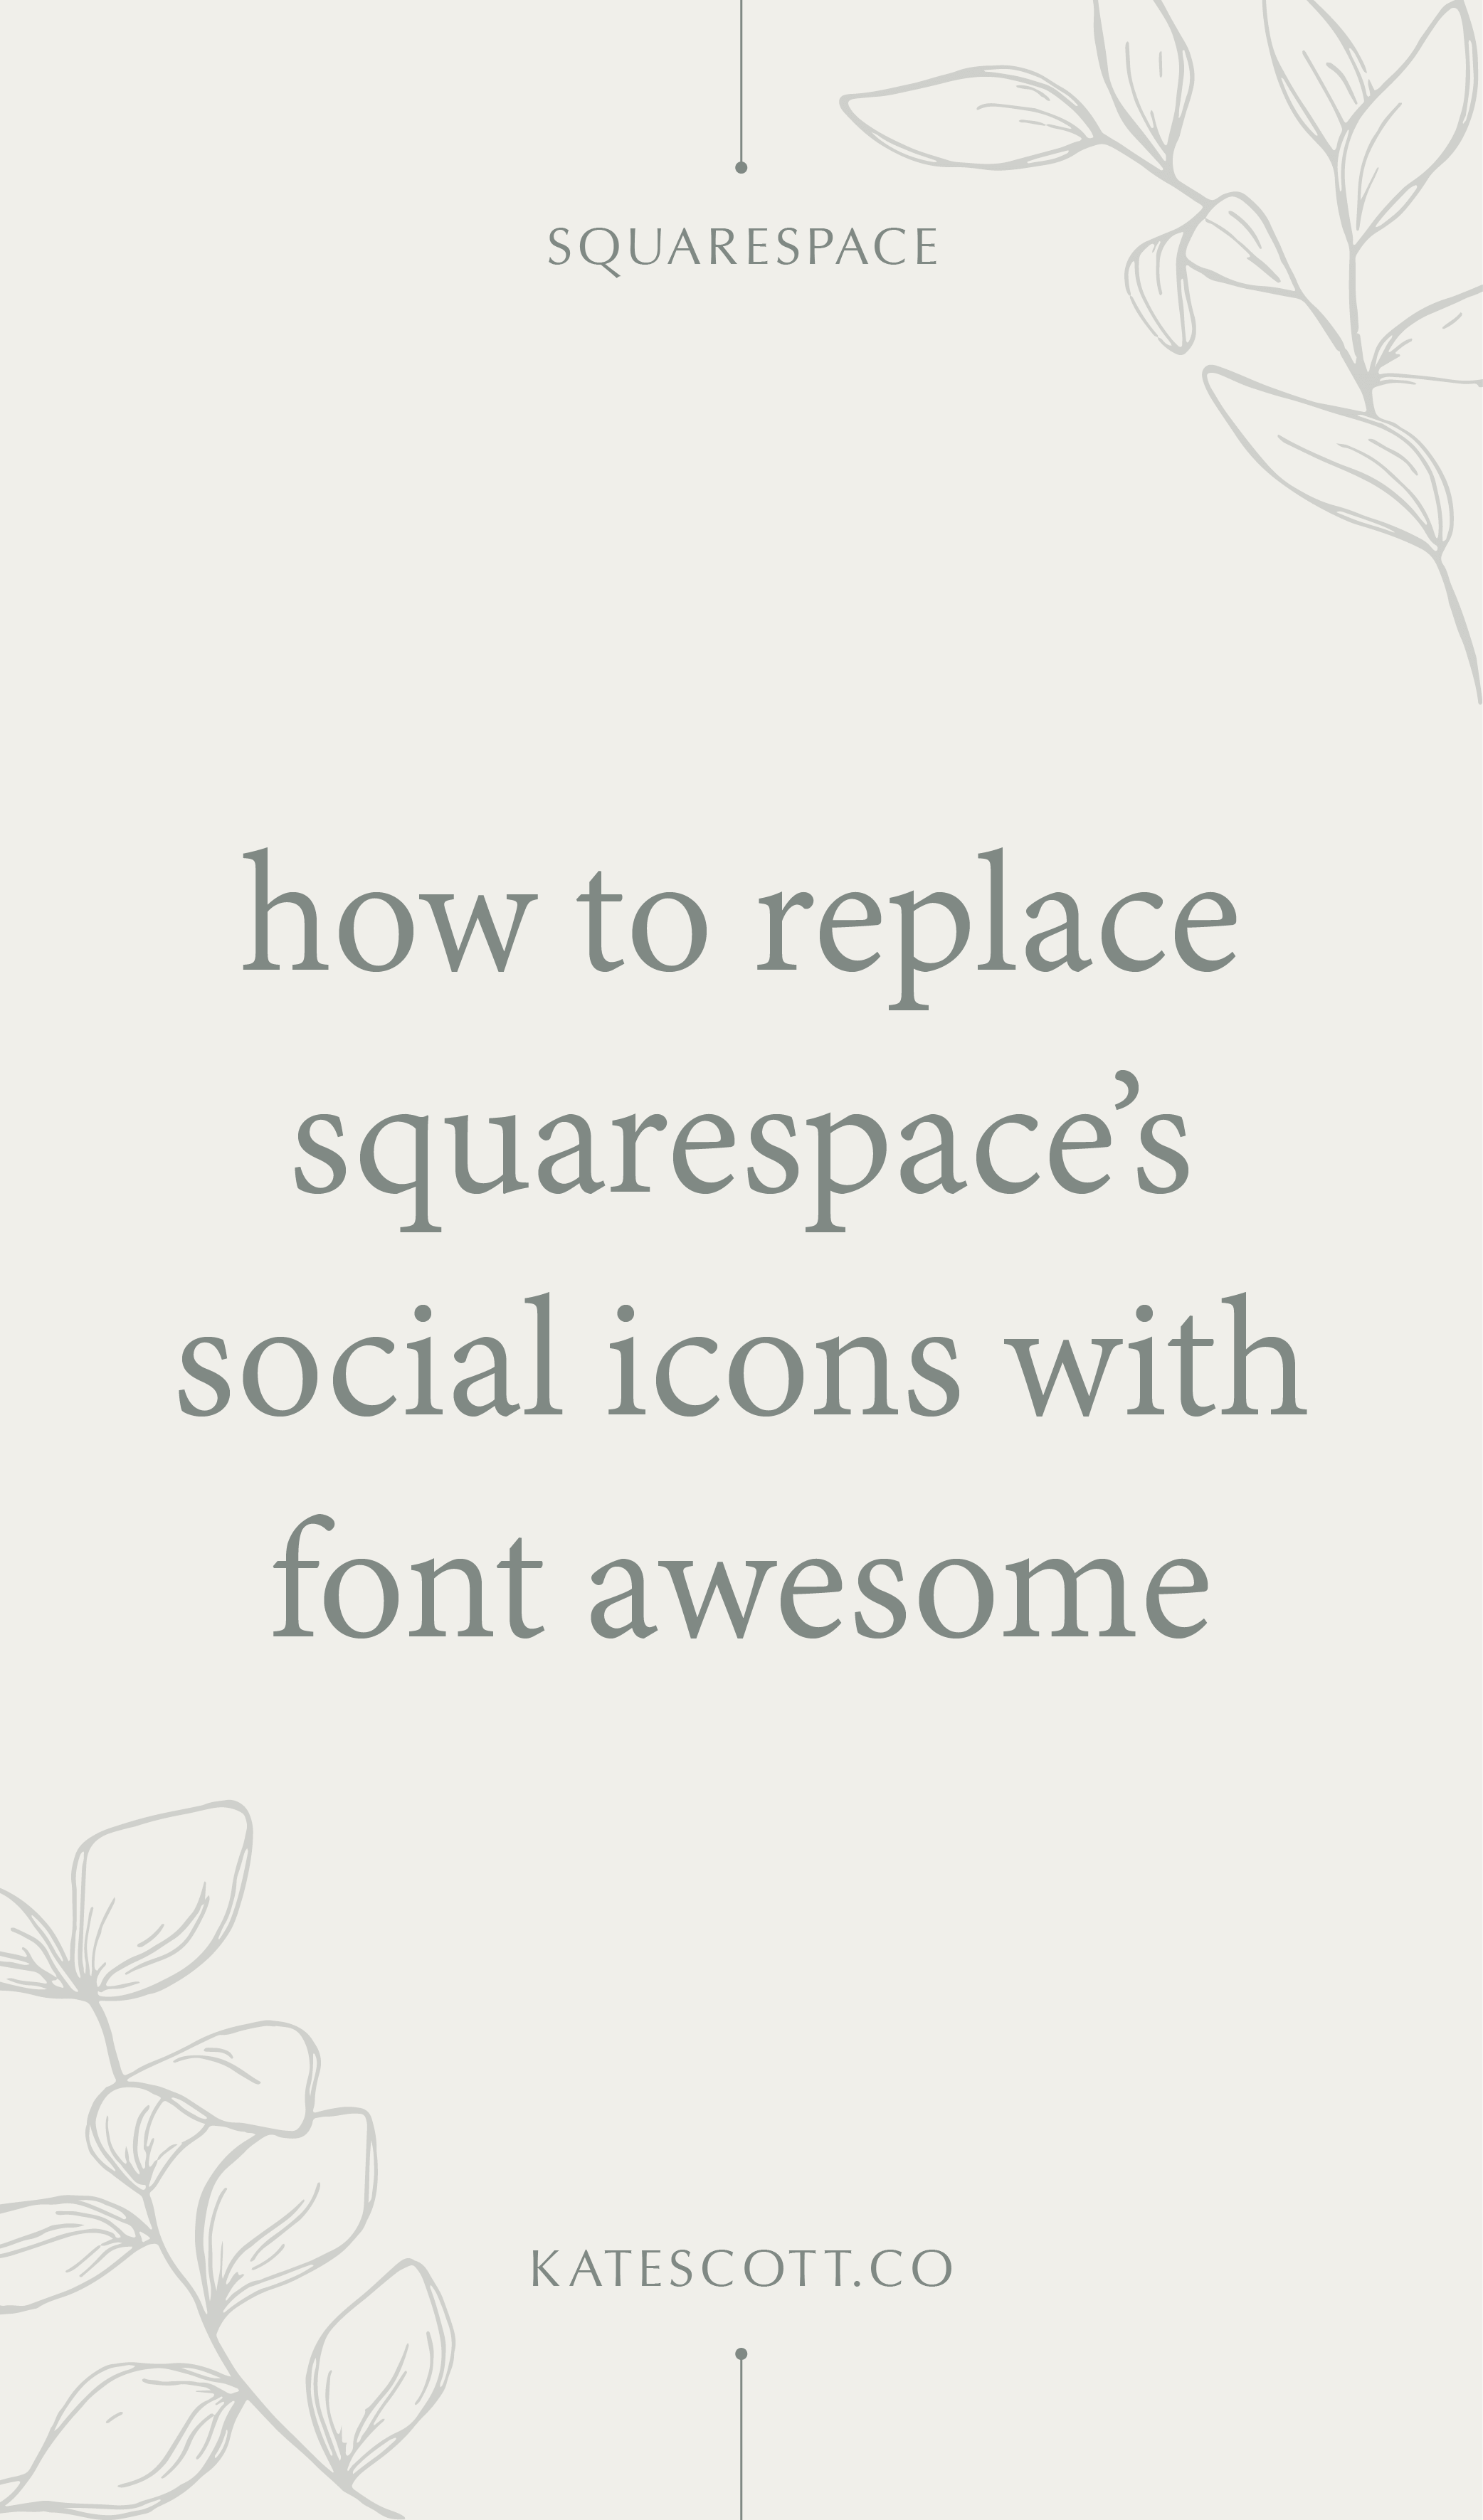 Squarespace's social icons are a hot, mismatched mess. Here's how you can replace them with elegant matching Font Awesome icons! | Squarespace Tutorial Design | Fontawesome Icons | Web Design Tutorial | Squarespace Design